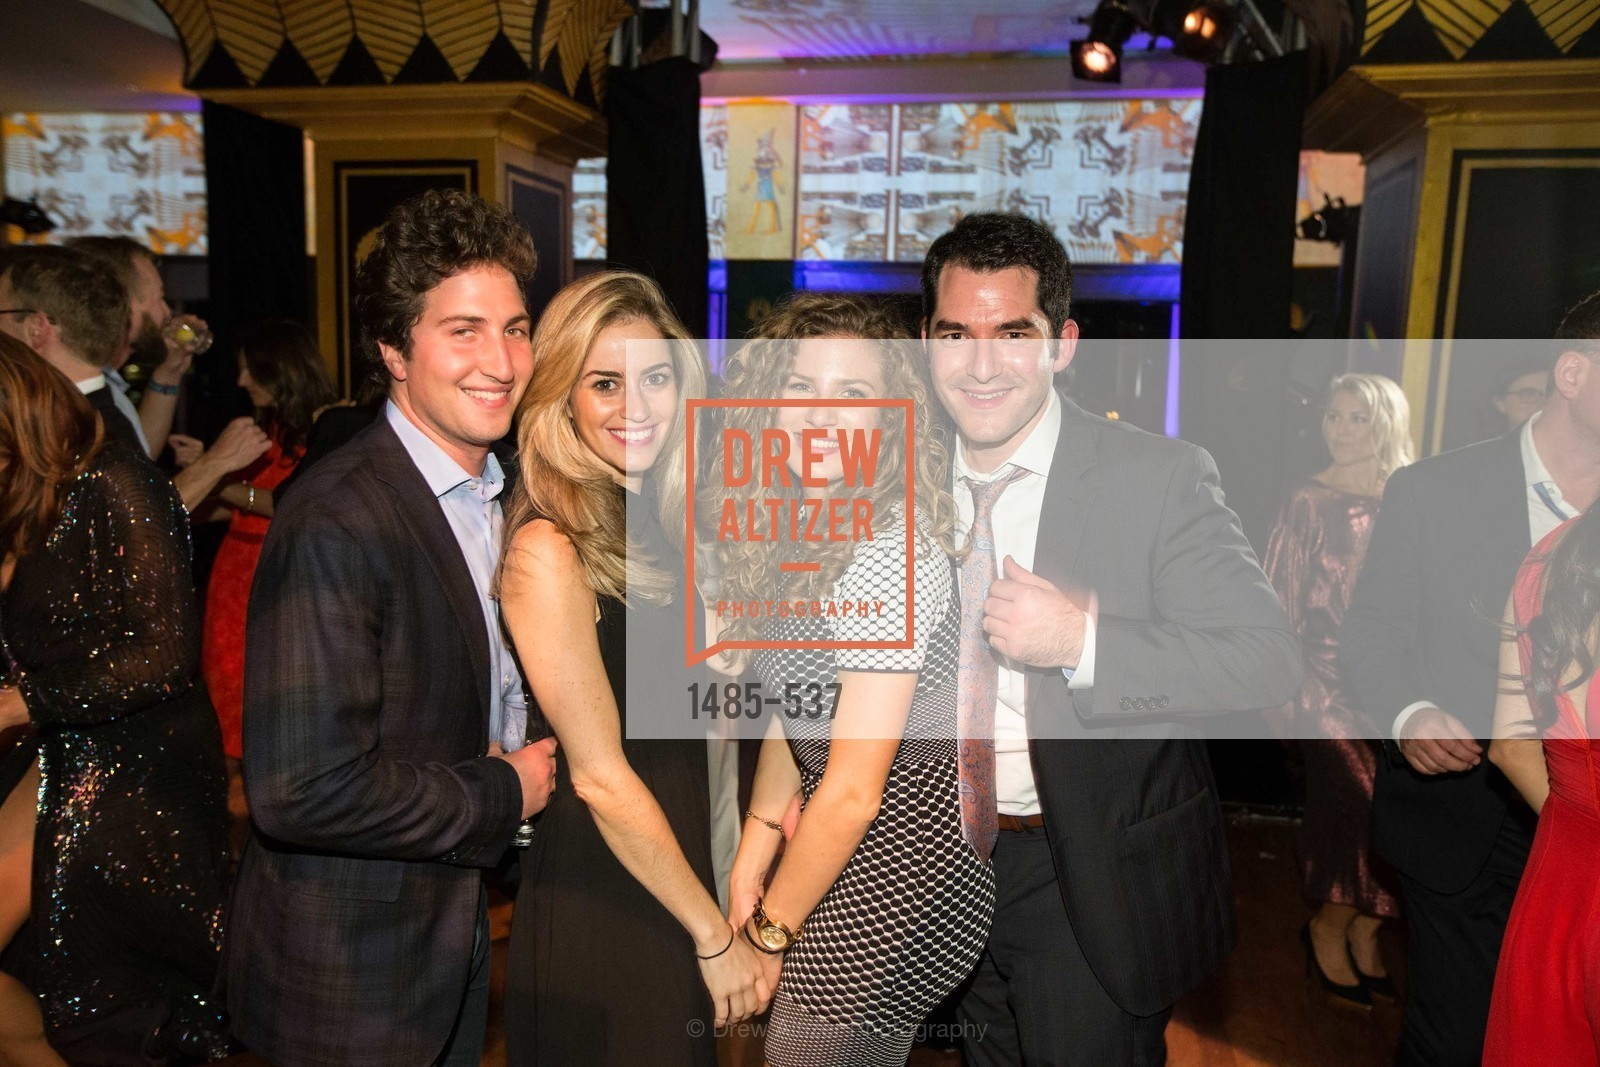 Matthew Goldman, Adriana Volocsky, Sam Aperbach, TOP OF THE MARK'S 75TH Anniversary Party, US, November 6th, 2014,Drew Altizer, Drew Altizer Photography, full-service agency, private events, San Francisco photographer, photographer california